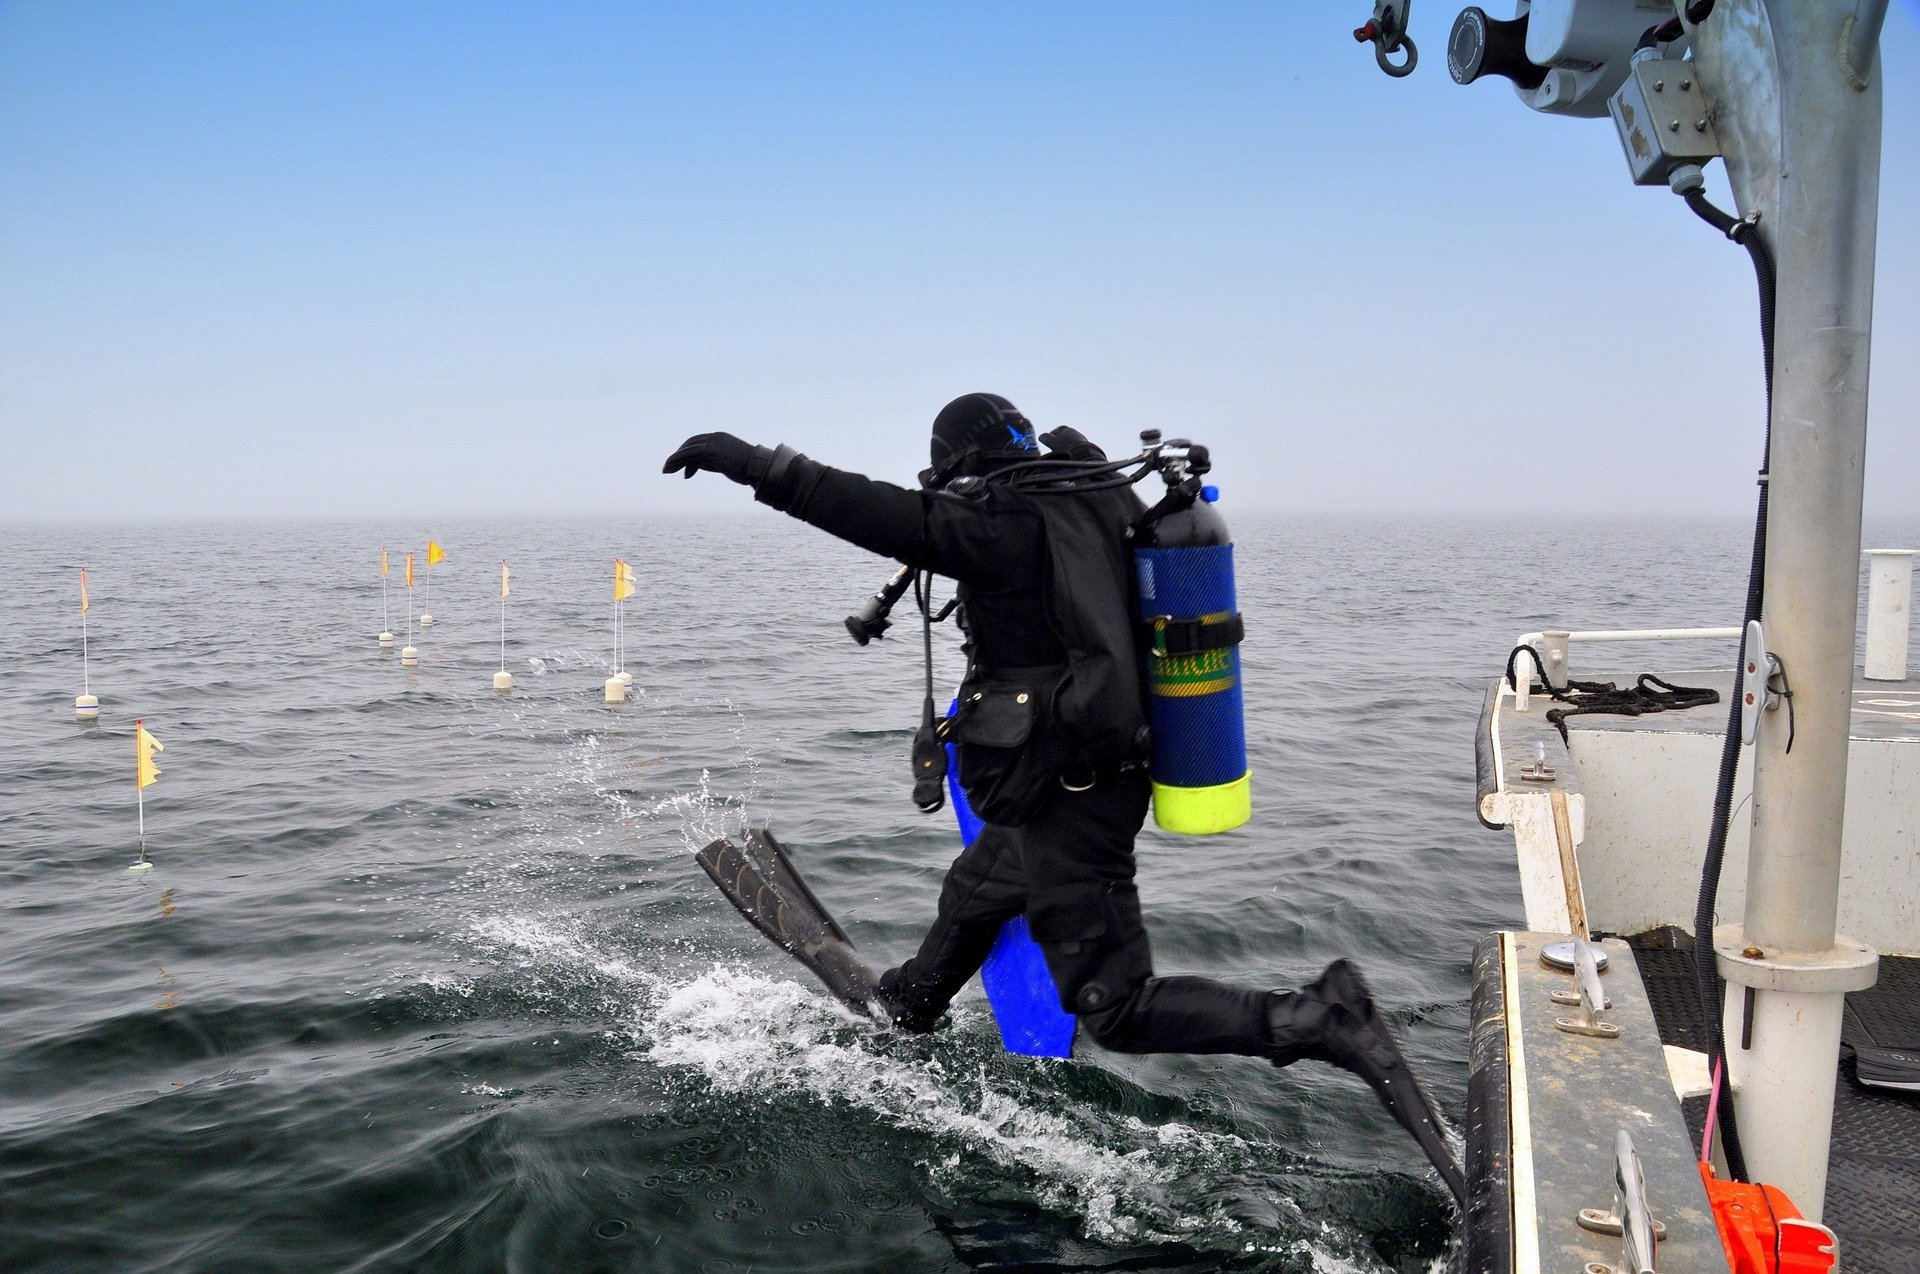 Travel with Scuba Gear or Not